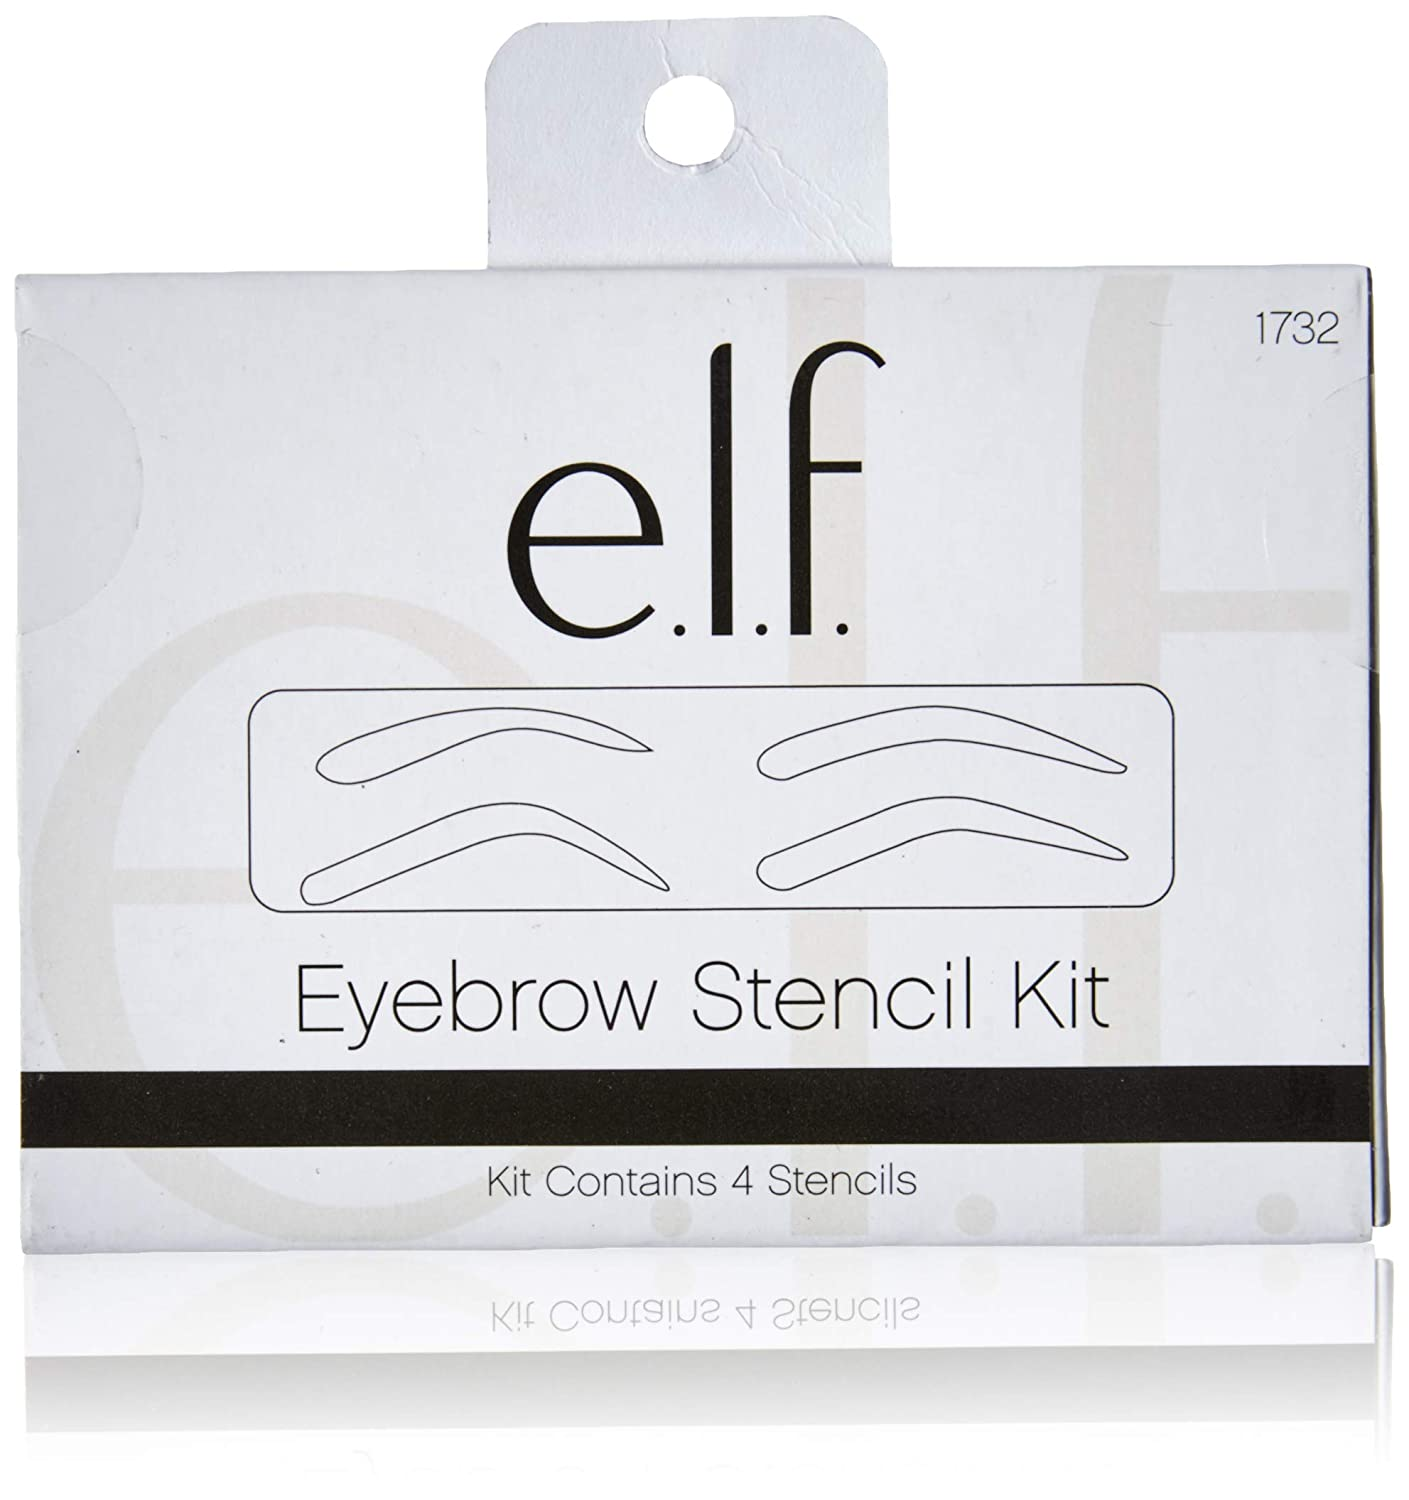 e.l.f. Eyebrow Stencil Kit JA Cosmetics 1722